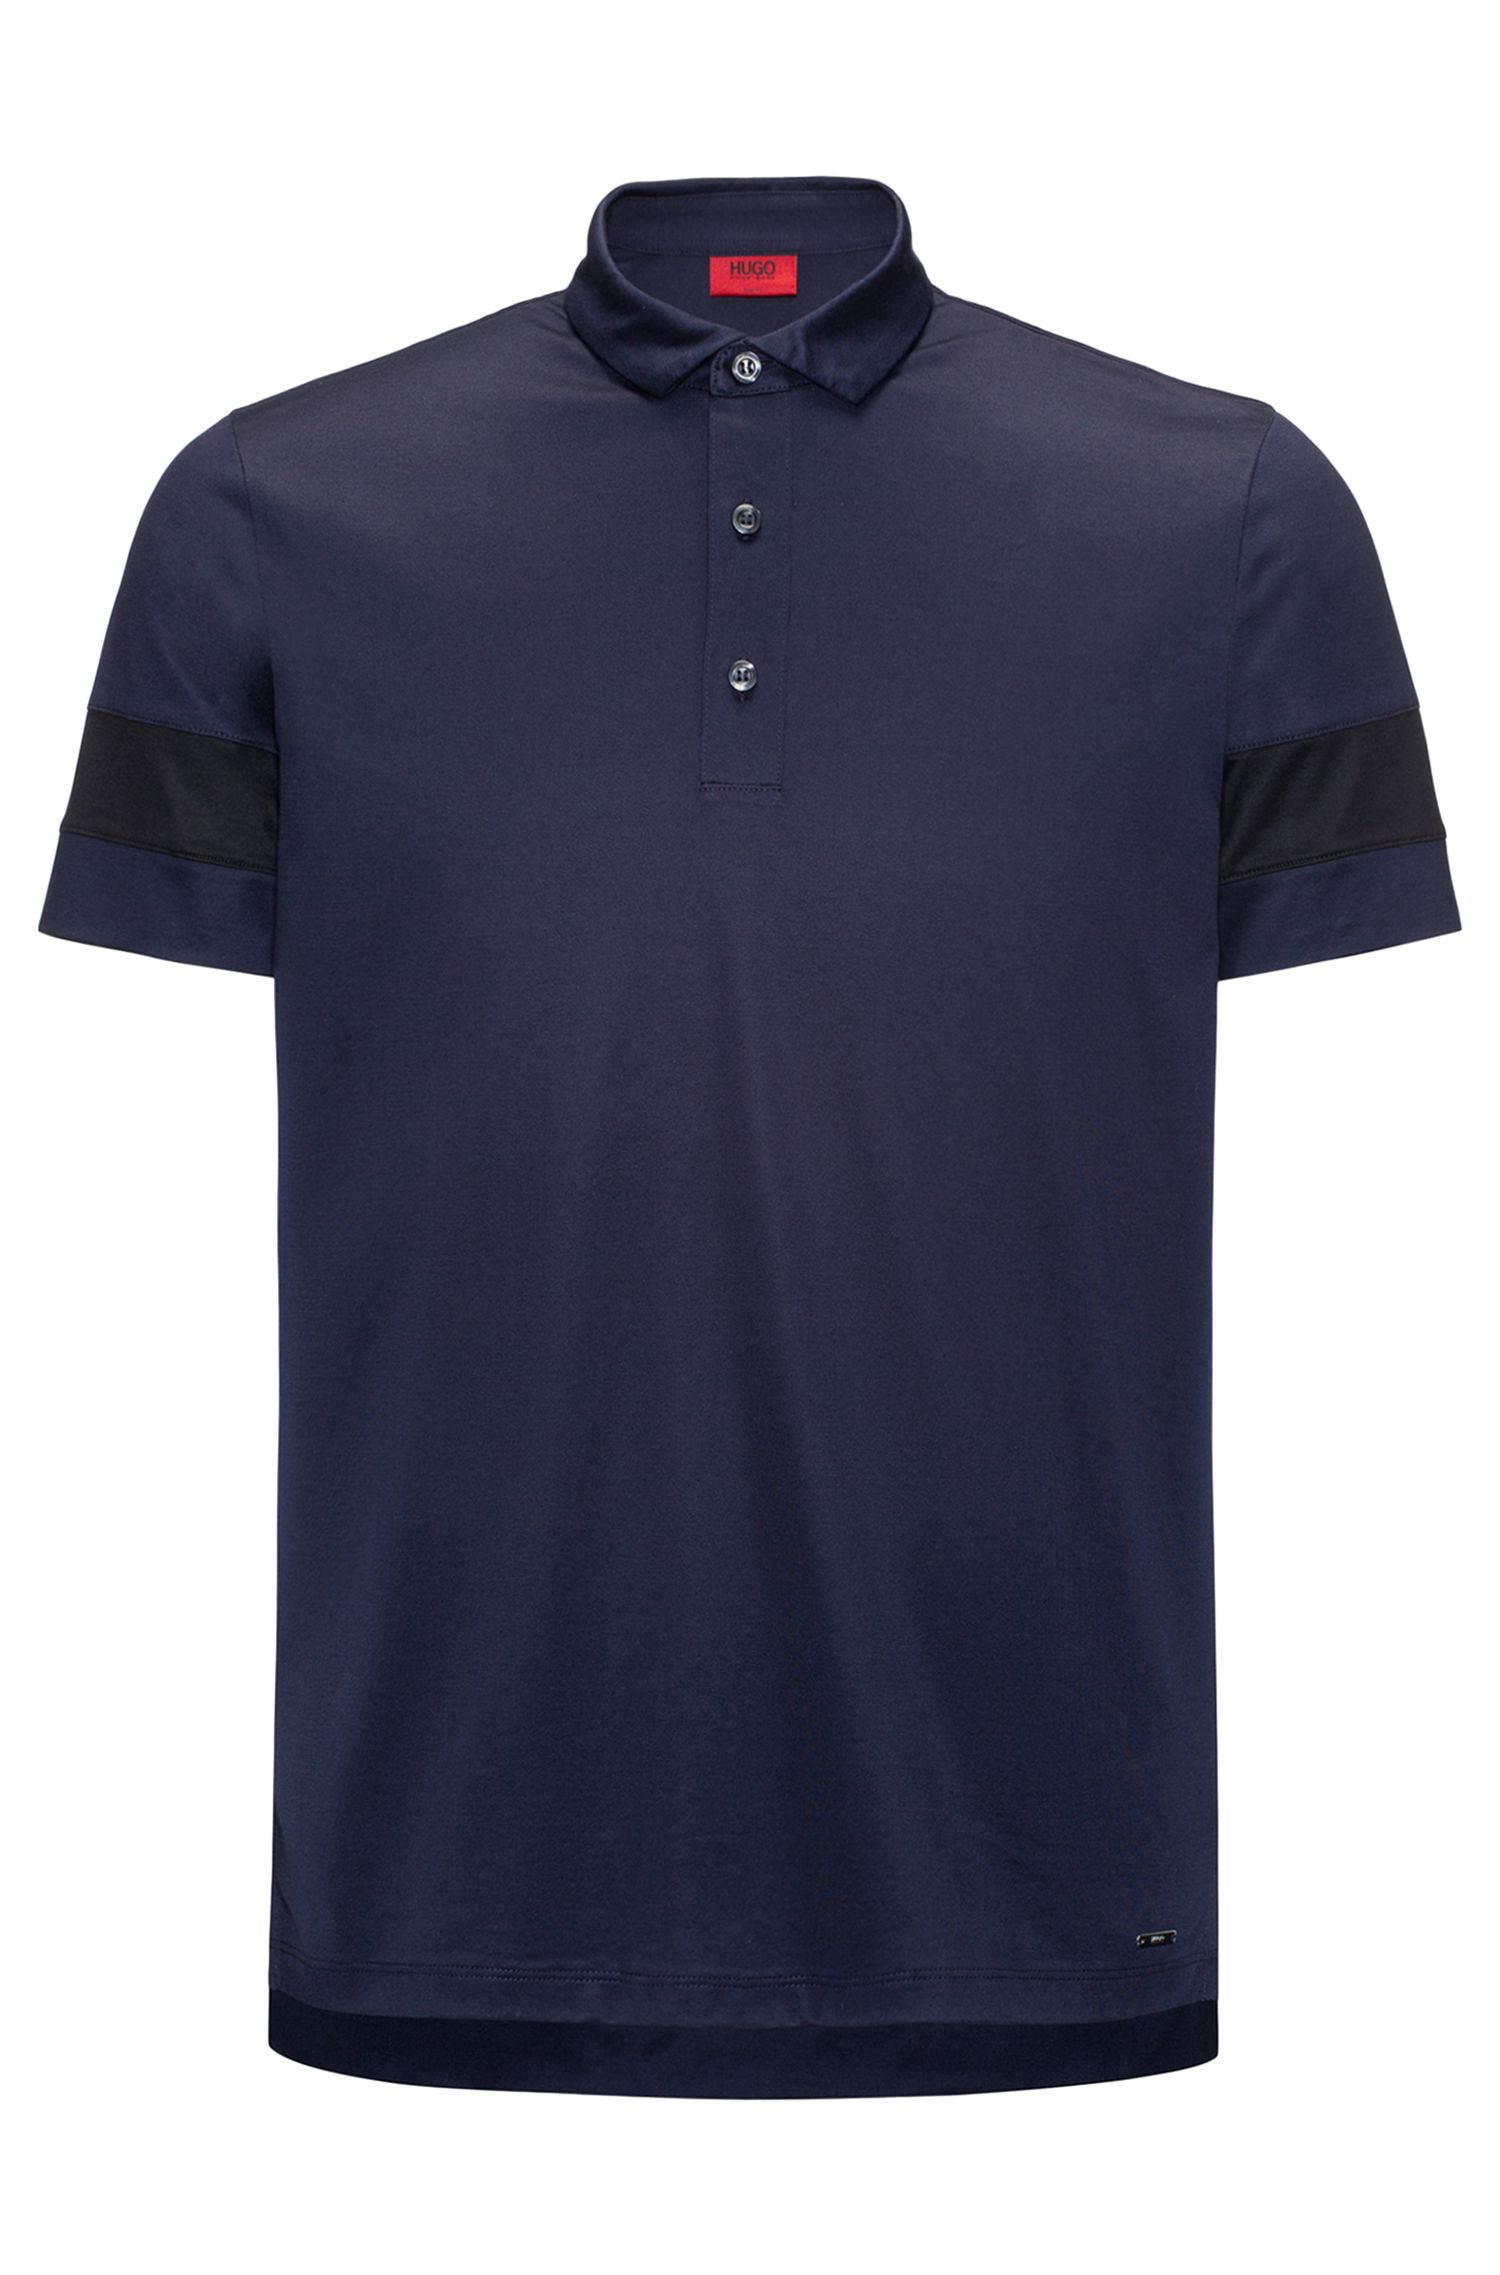 Thick-Striped Mercerized Cotton Polo Shirt, Slim Fit | Drooks, Dark Blue